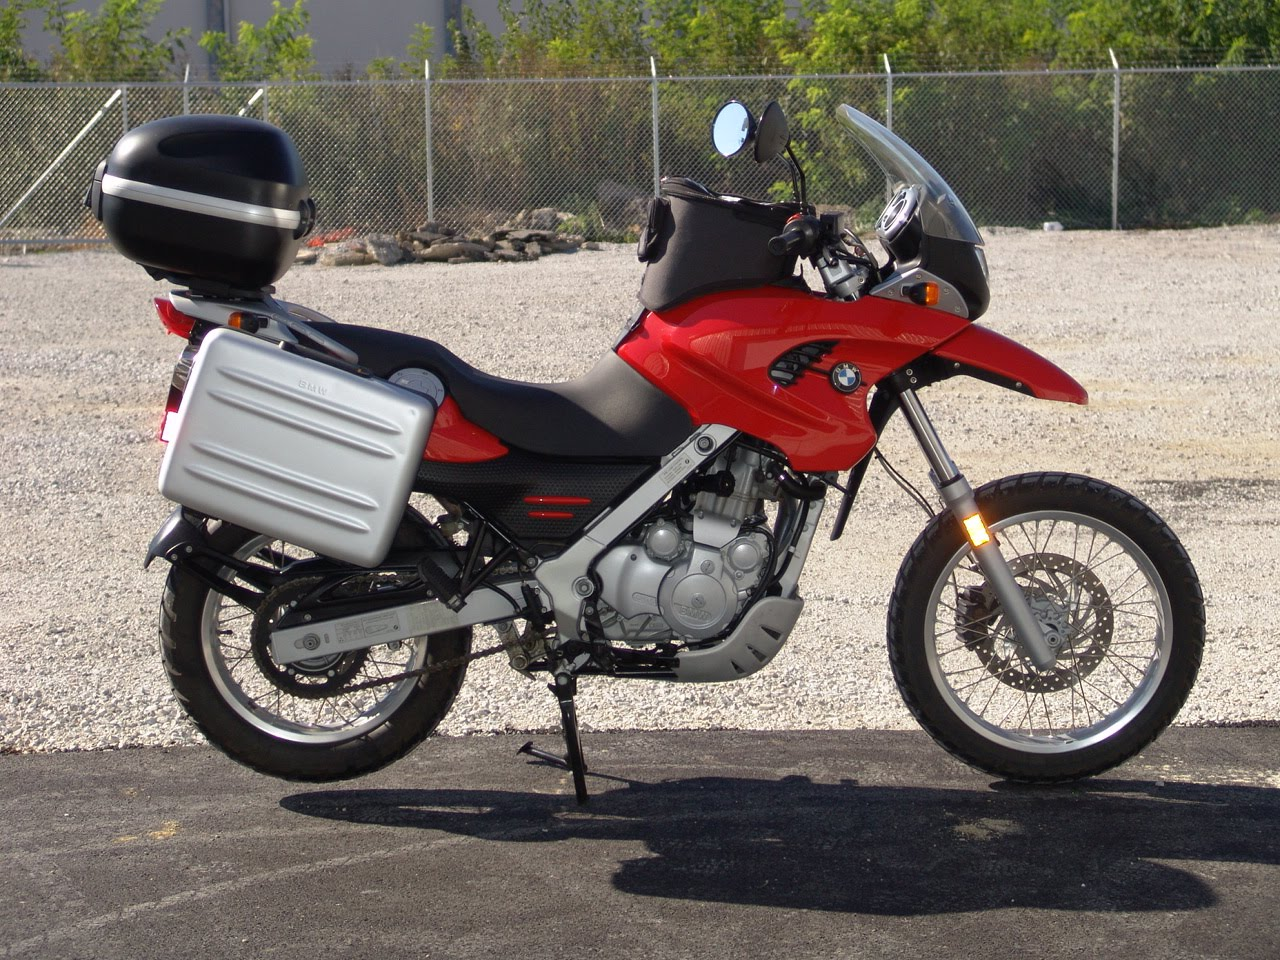 2001 Bmw F650gs Pics Specs And Information Onlymotorbikes Com